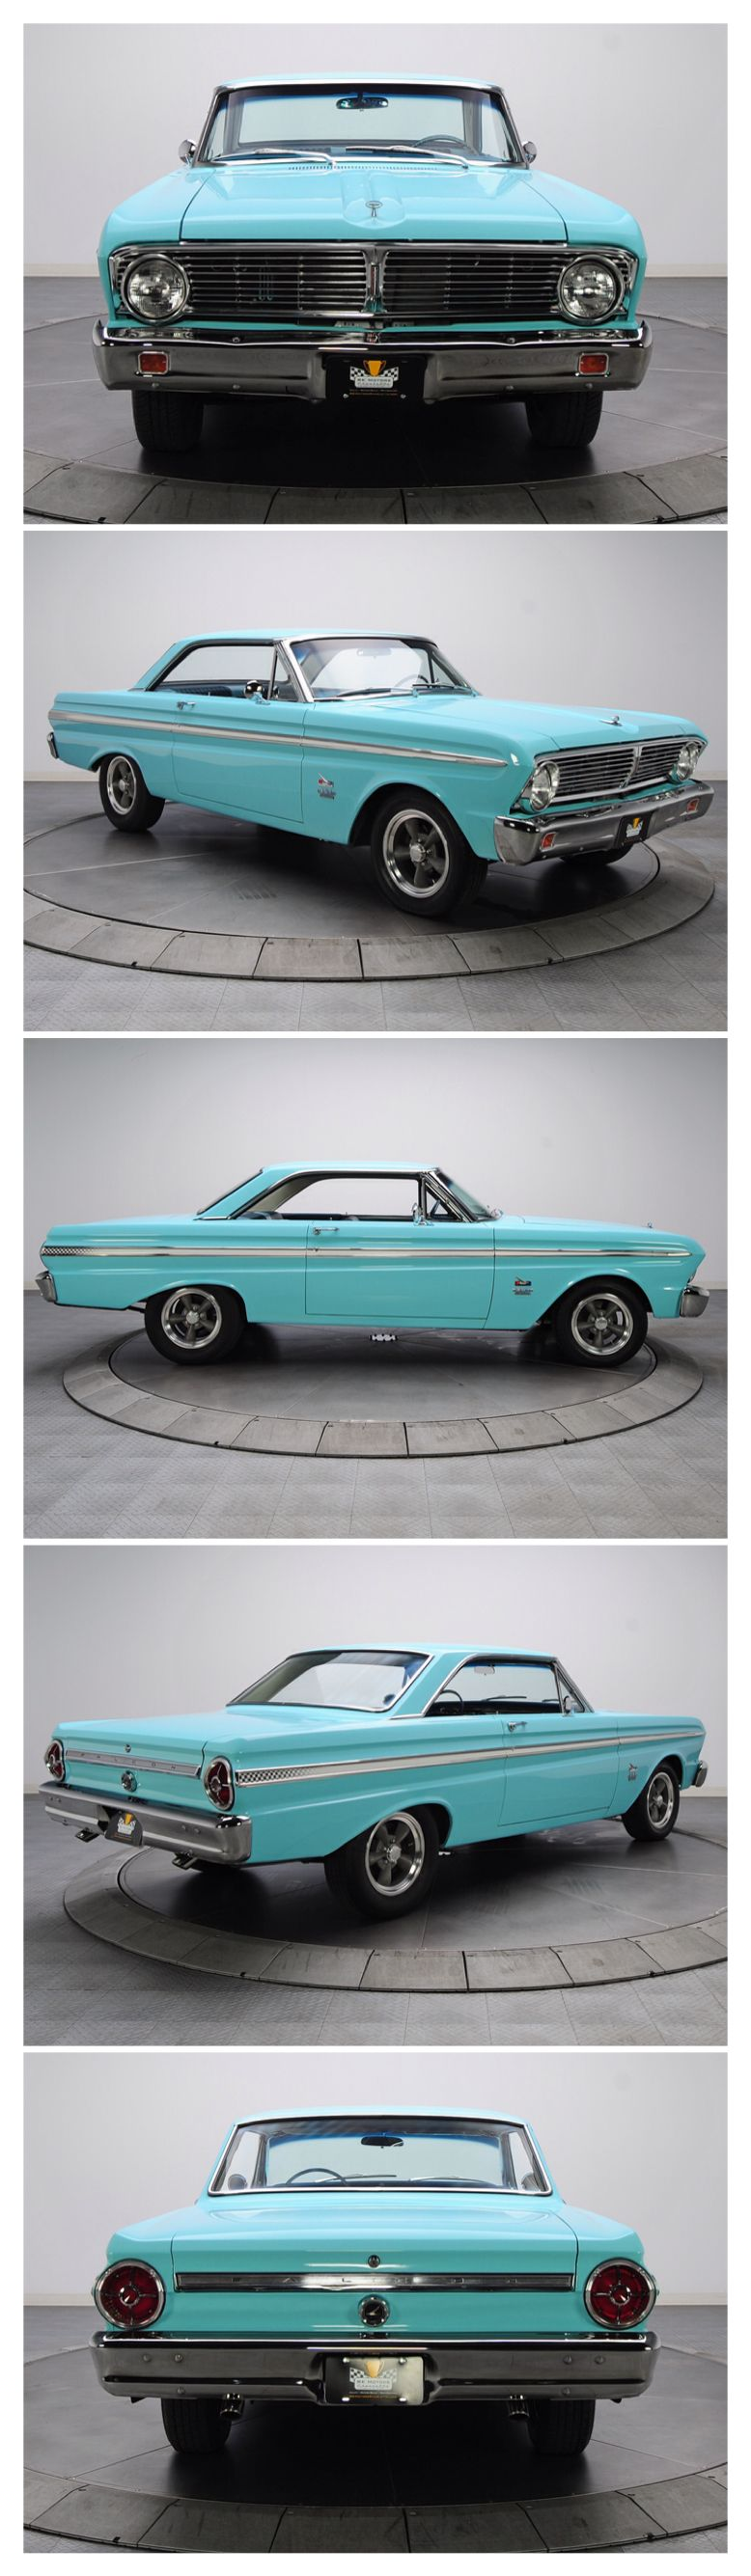 1965 Ford Falcon Futura Re Pin Brought To You By Houseofinsurance For Carinsurance Eugeneoregon Classic Cars Cool Old Cars Ford Classic Cars